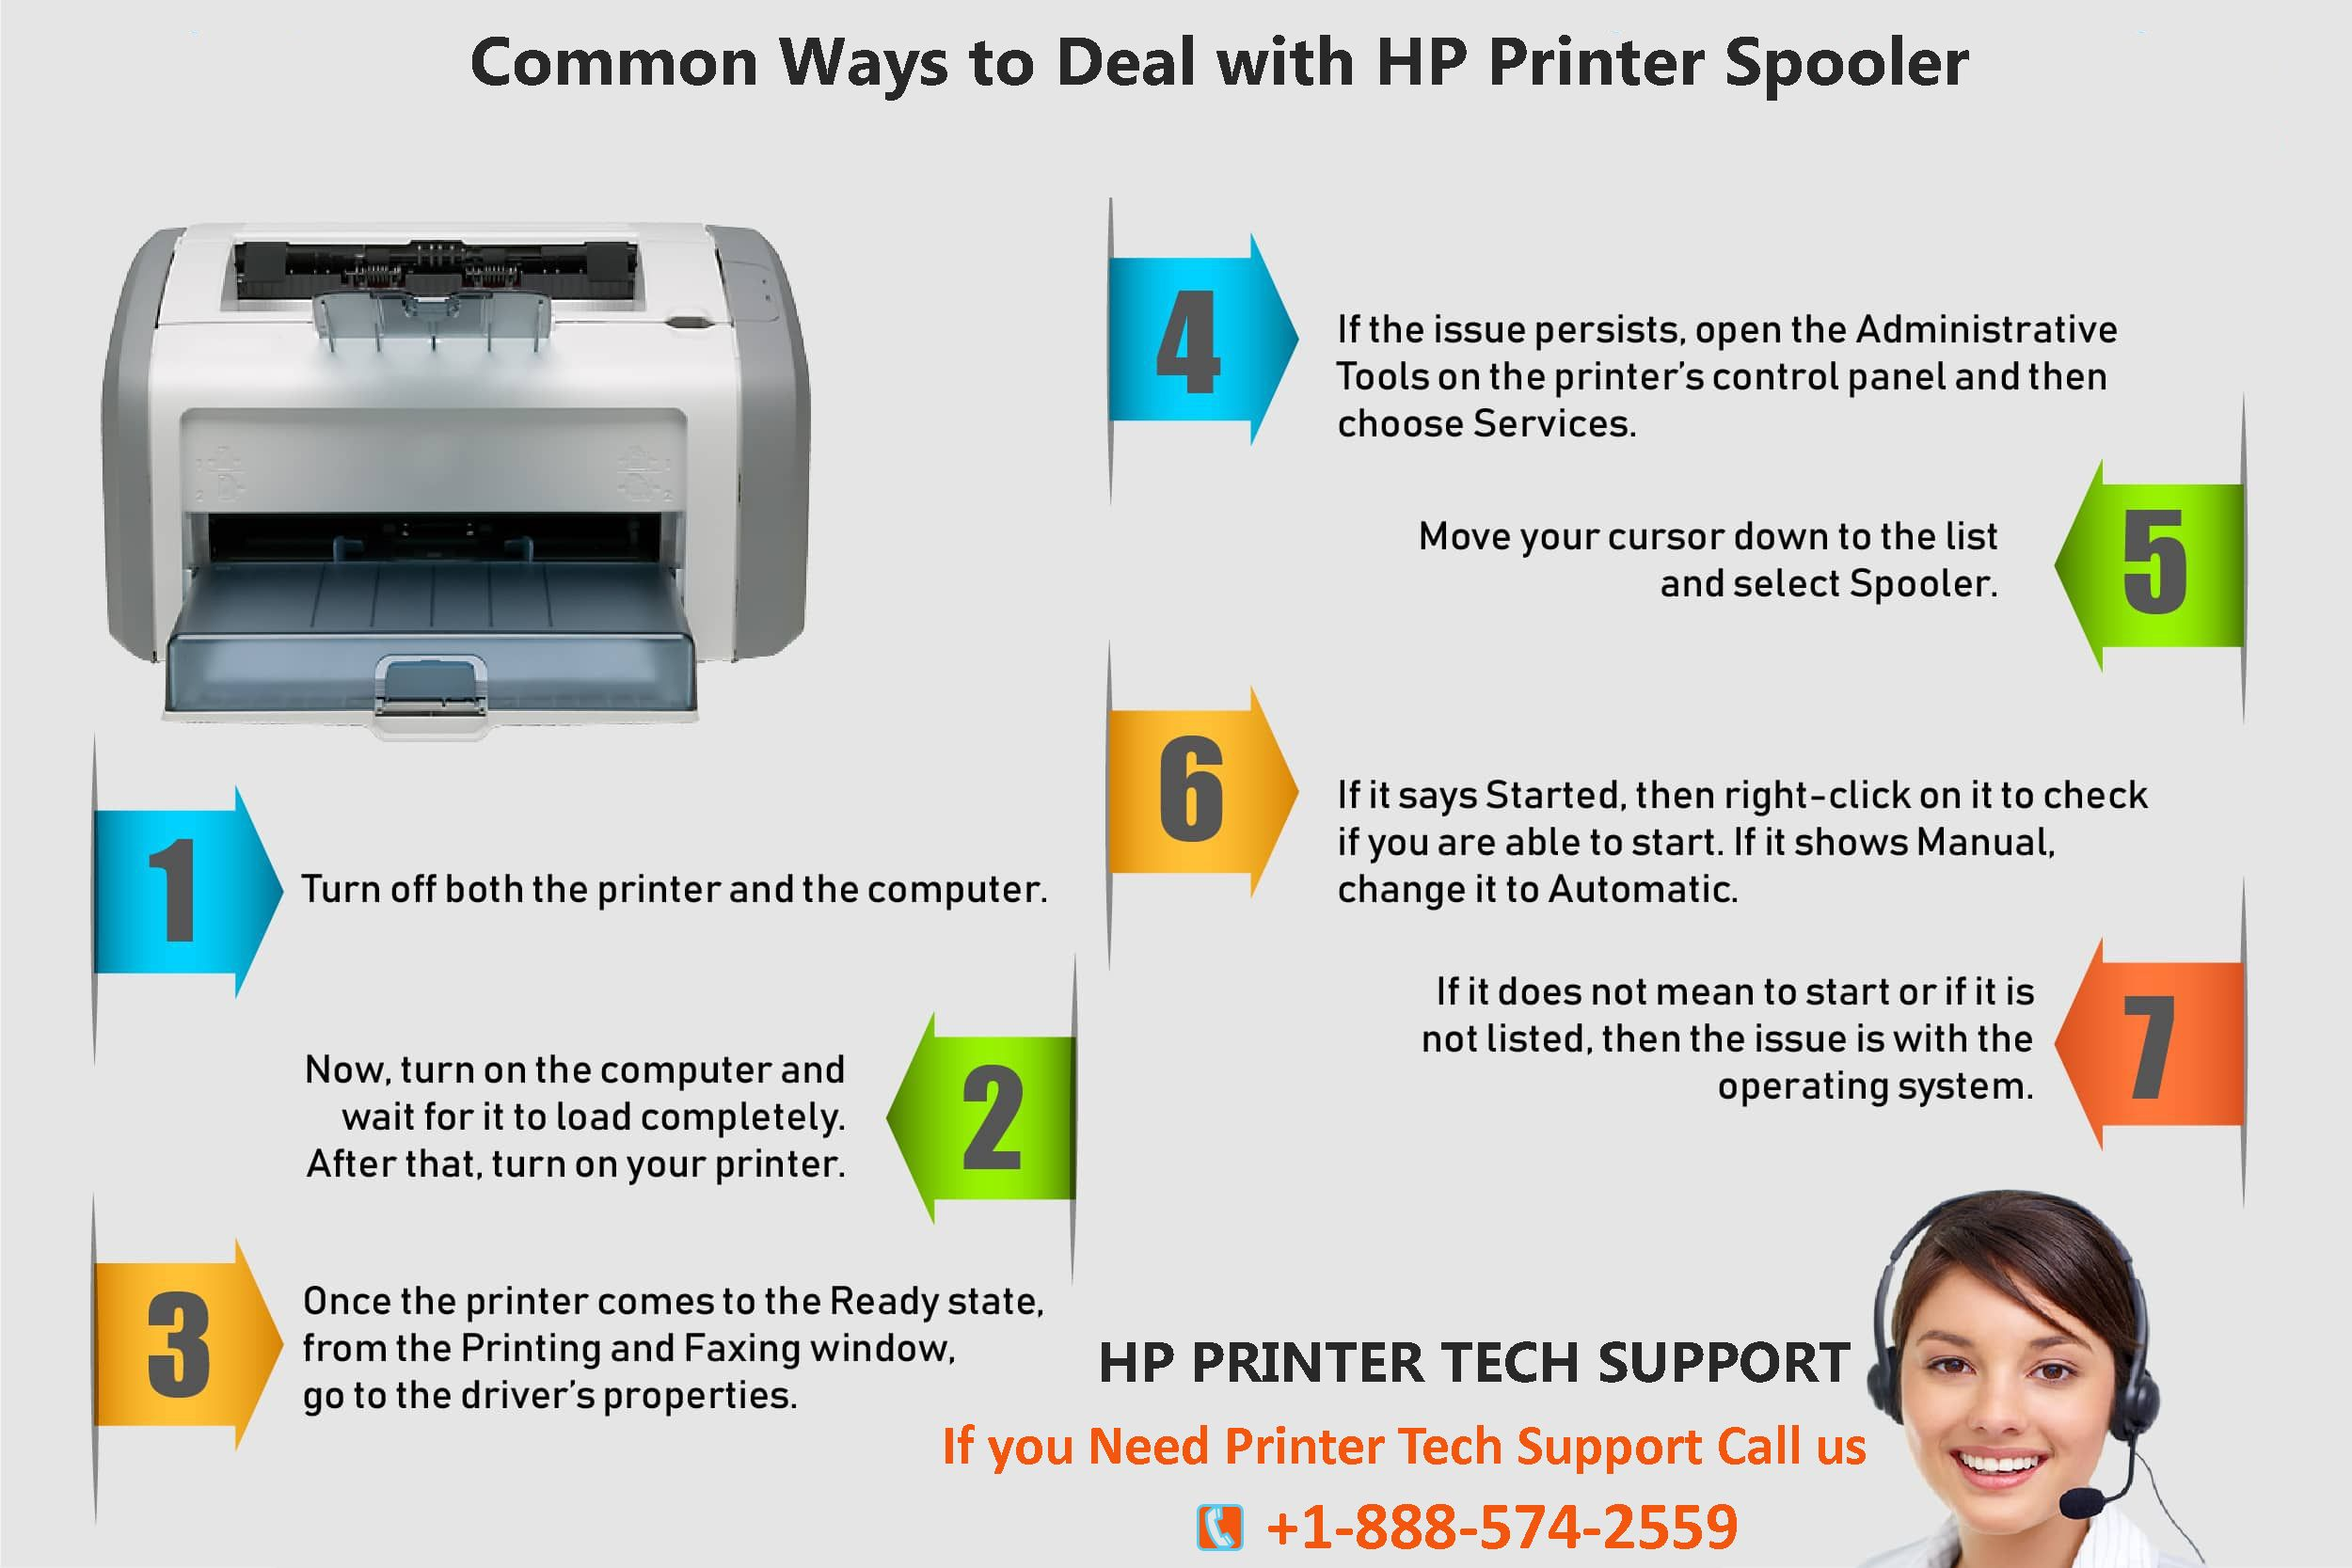 Printers Tech Support Services Hp Printers Hp Printer Printer